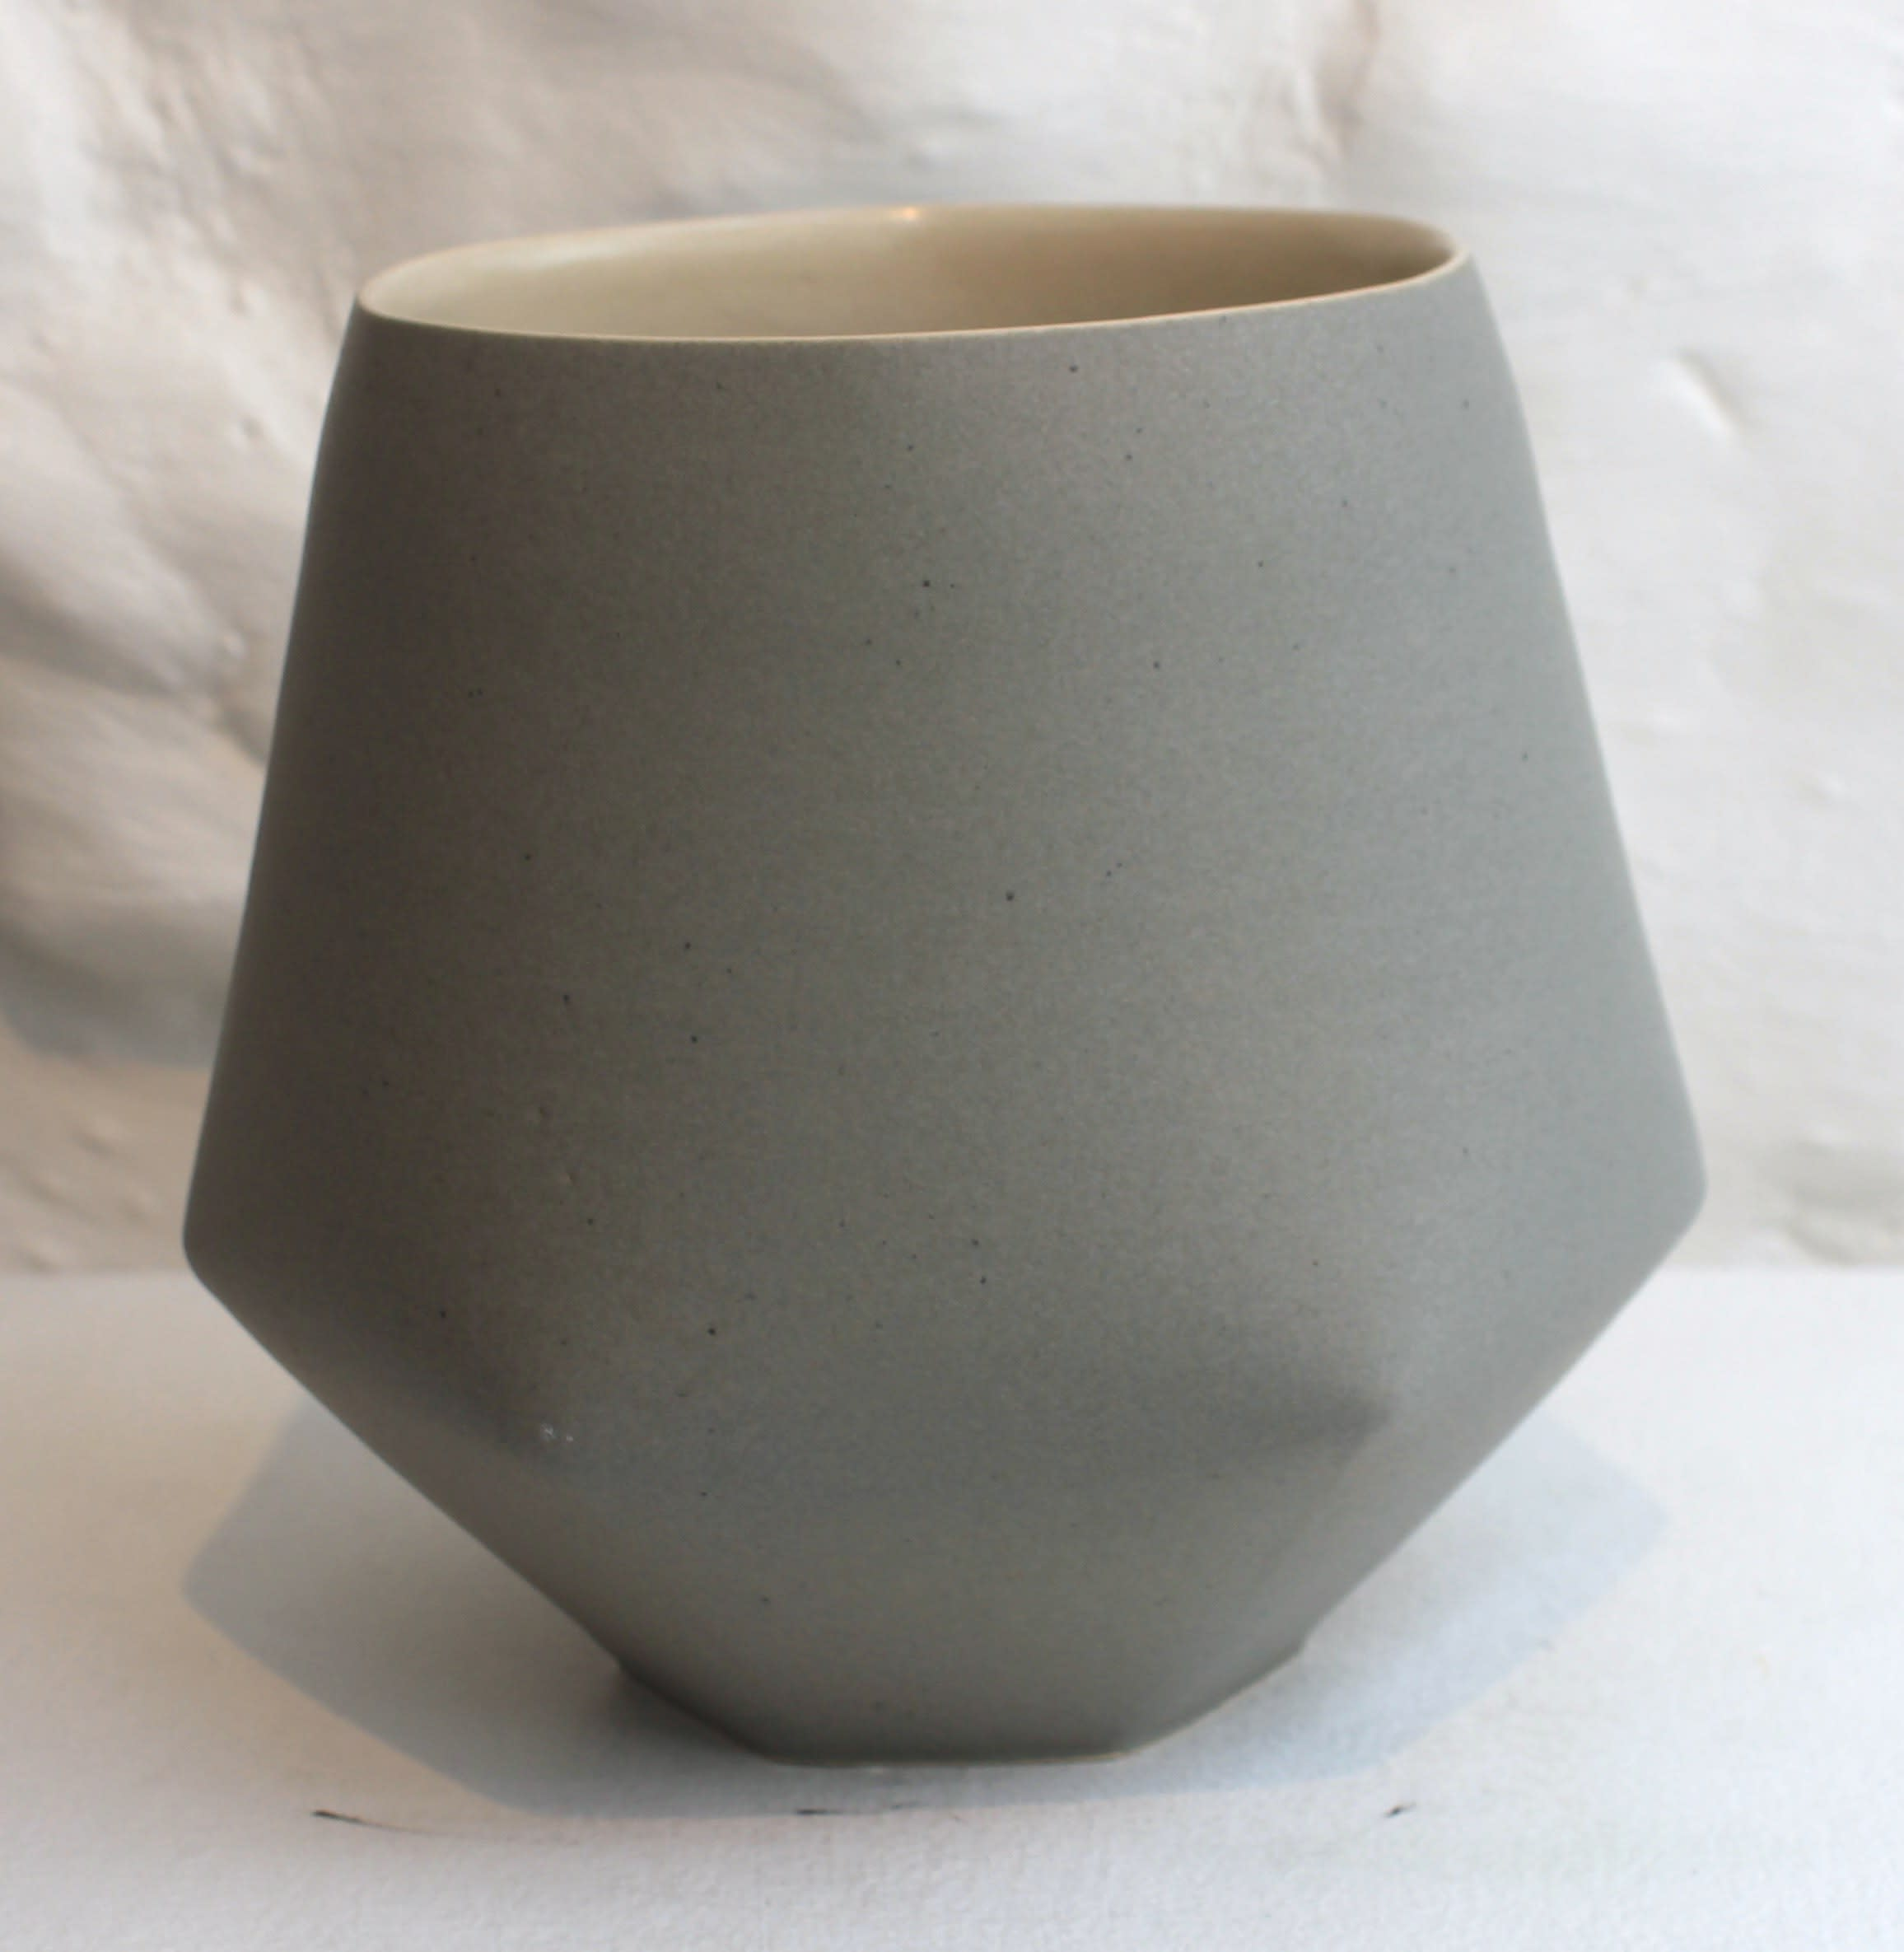 "<span class=""link fancybox-details-link""><a href=""/artists/33-sun-kim/works/5736-sun-kim-large-vase-2018/"">View Detail Page</a></span><div class=""artist""><strong>Sun Kim</strong></div> <div class=""title""><em>Large Vase</em>, 2018</div> <div class=""signed_and_dated"">stamped by the artist</div> <div class=""medium"">Porcelain</div> <div class=""dimensions"">18 x 16 x 12 cm<br /> 7 1/8 x 6 1/4 x 4 3/4 inches</div><div class=""price"">£400.00</div><div class=""copyright_line"">OwnArt: £ 40 x 10 Months, 0% APR</div>"